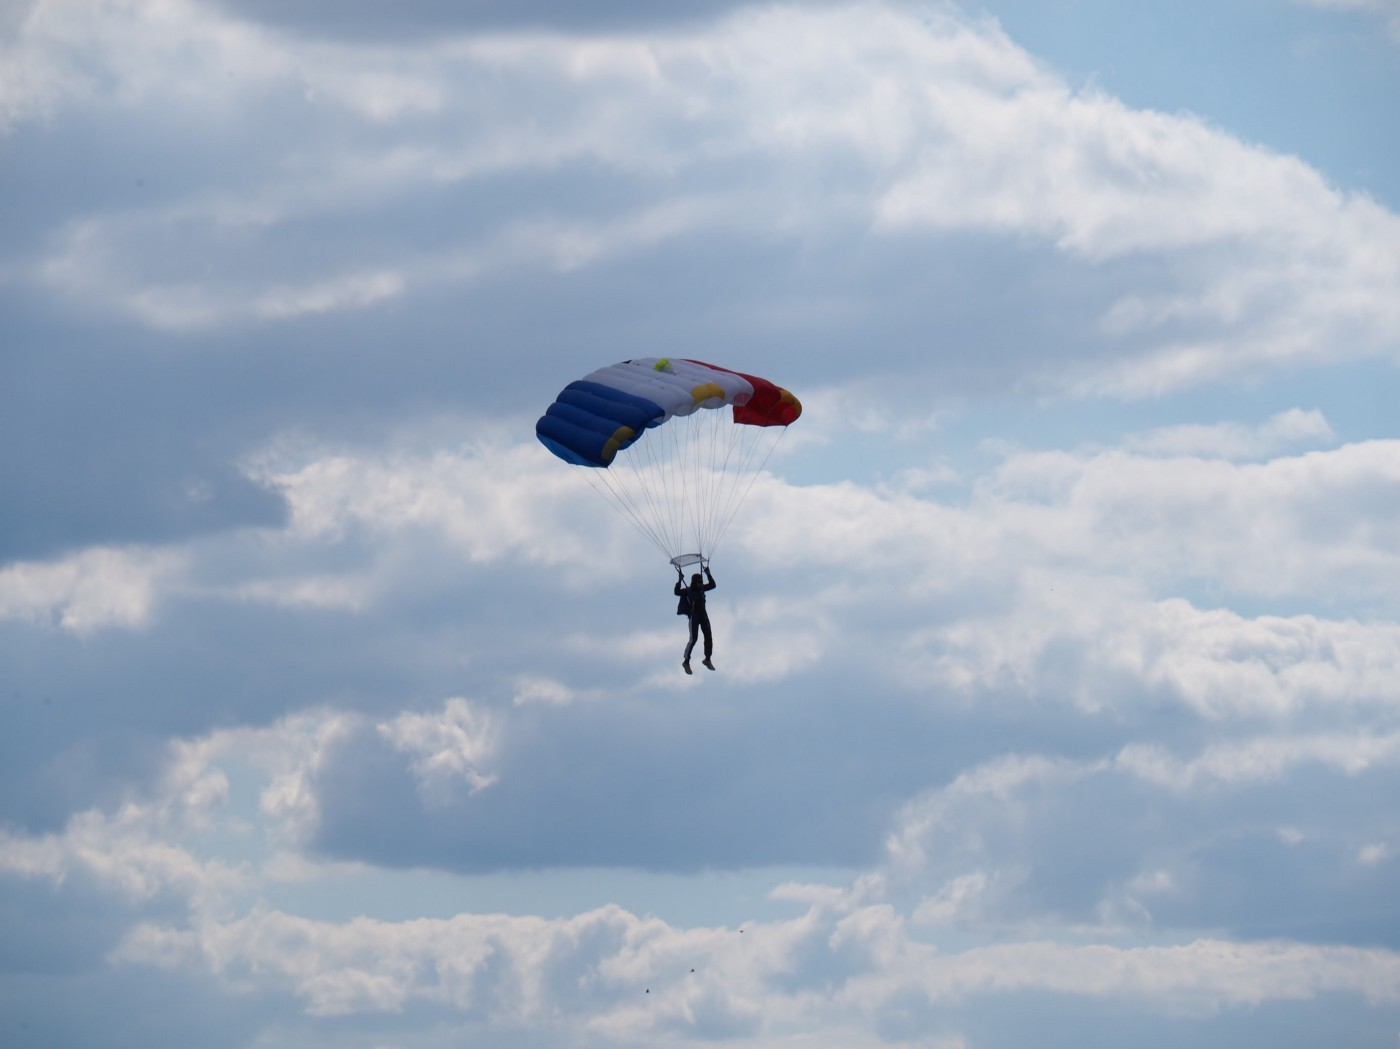 Picture of a person parachuting.